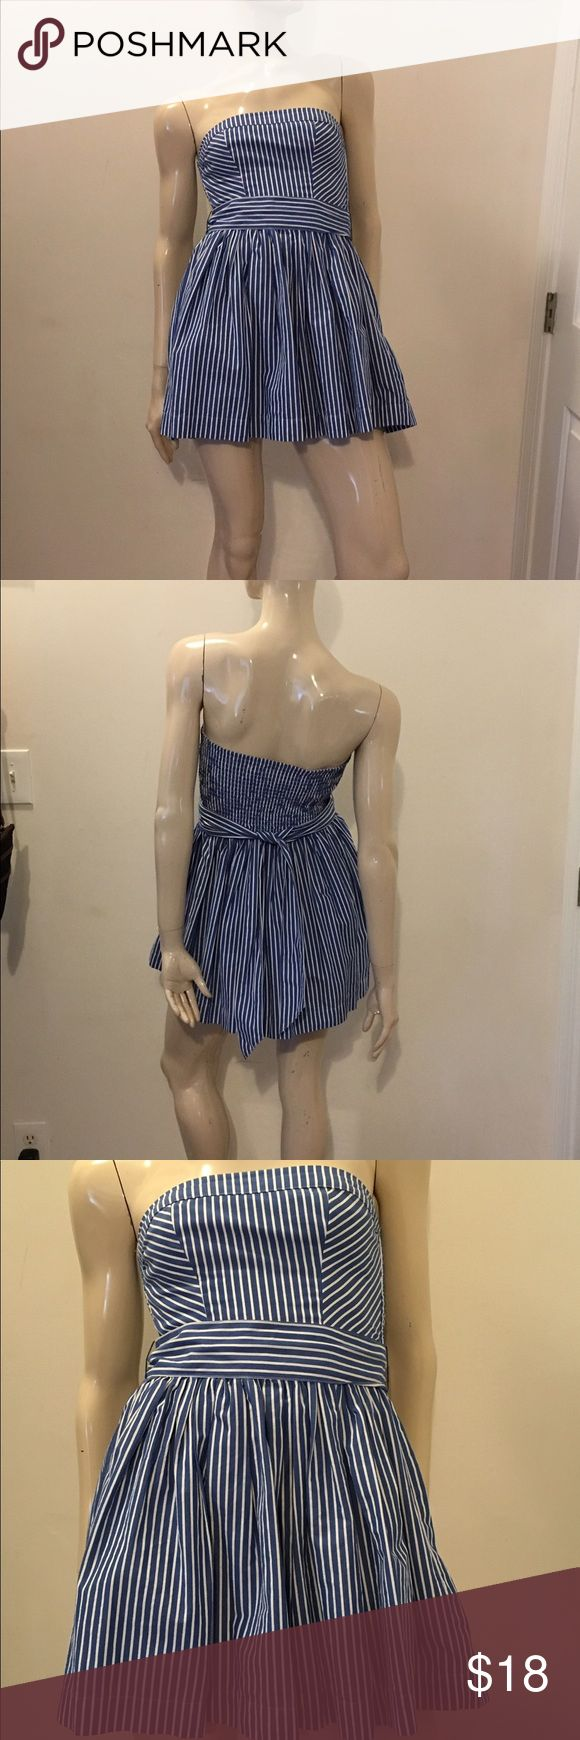 Cute & flirty size XS Abercrombie and Fitch dress Awesome size XS blue and white striped Abercrombie and Fitch mini dress with a lovely wide sash, this dress is perfect for spring/summer, great condition and gently used. Abercrombie & Fitch Dresses Mini